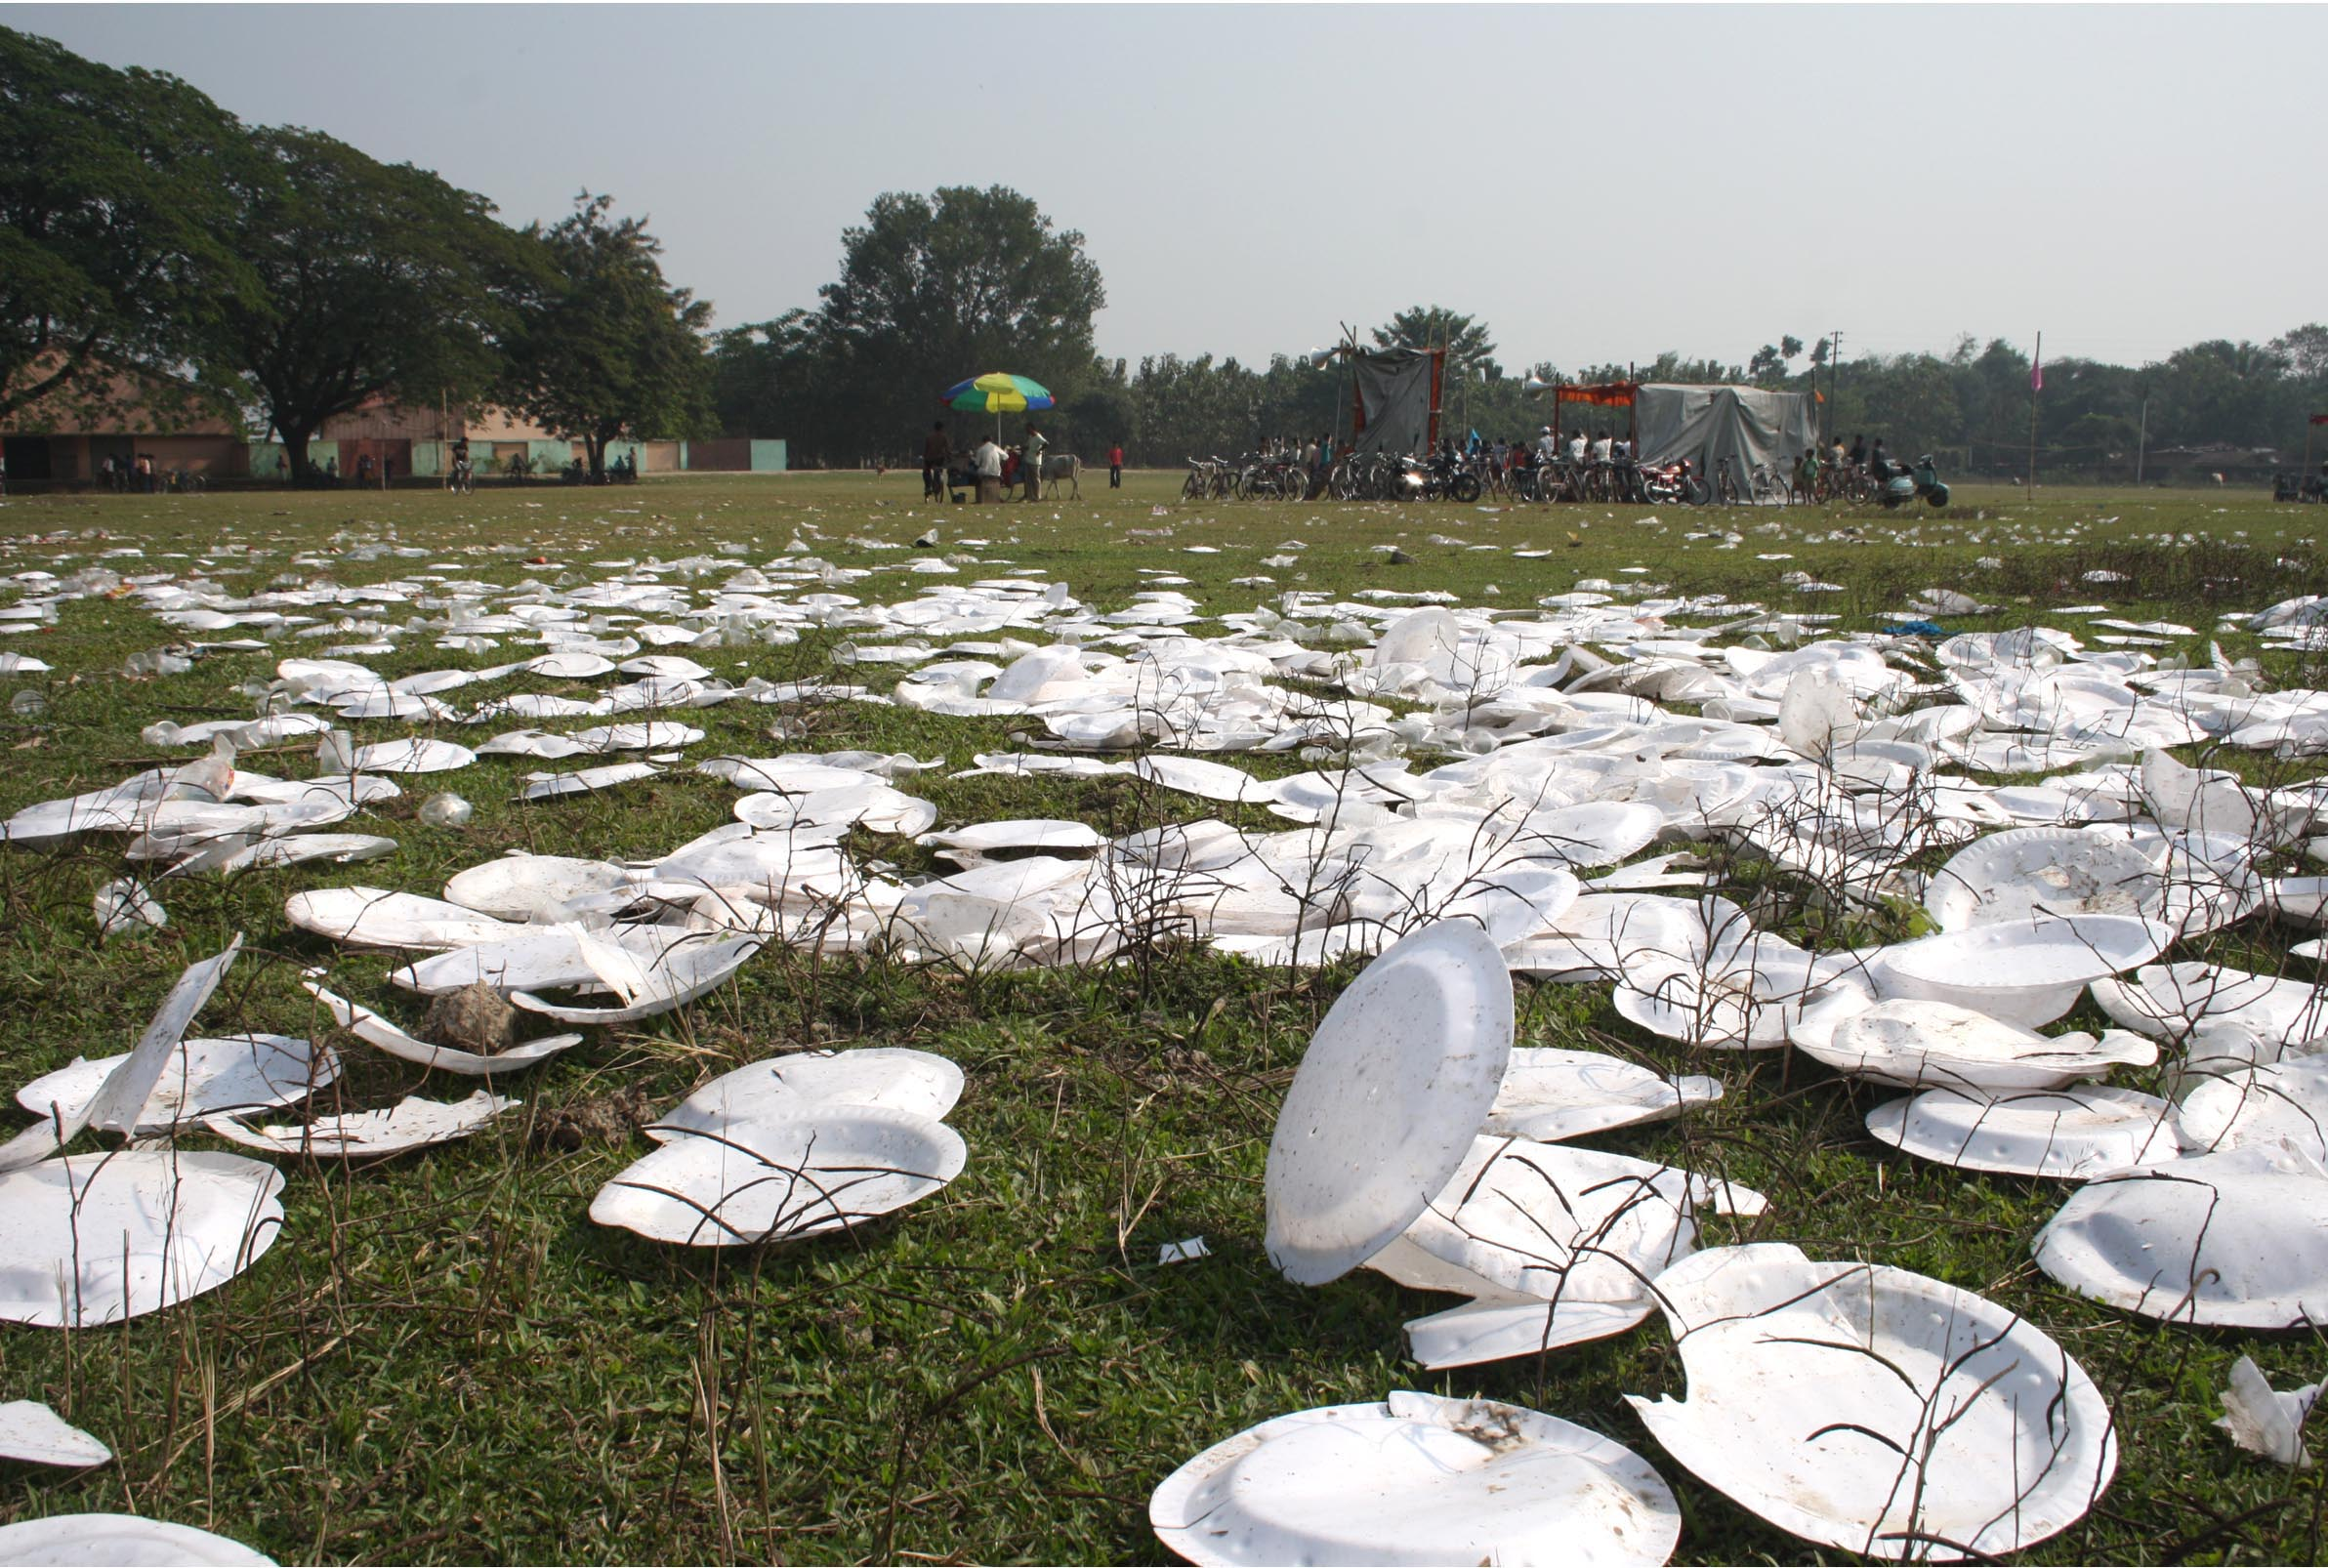 Unfortunately, even today, picnickers use plates and cups made of plastic or styrofoam, which pollute the environment